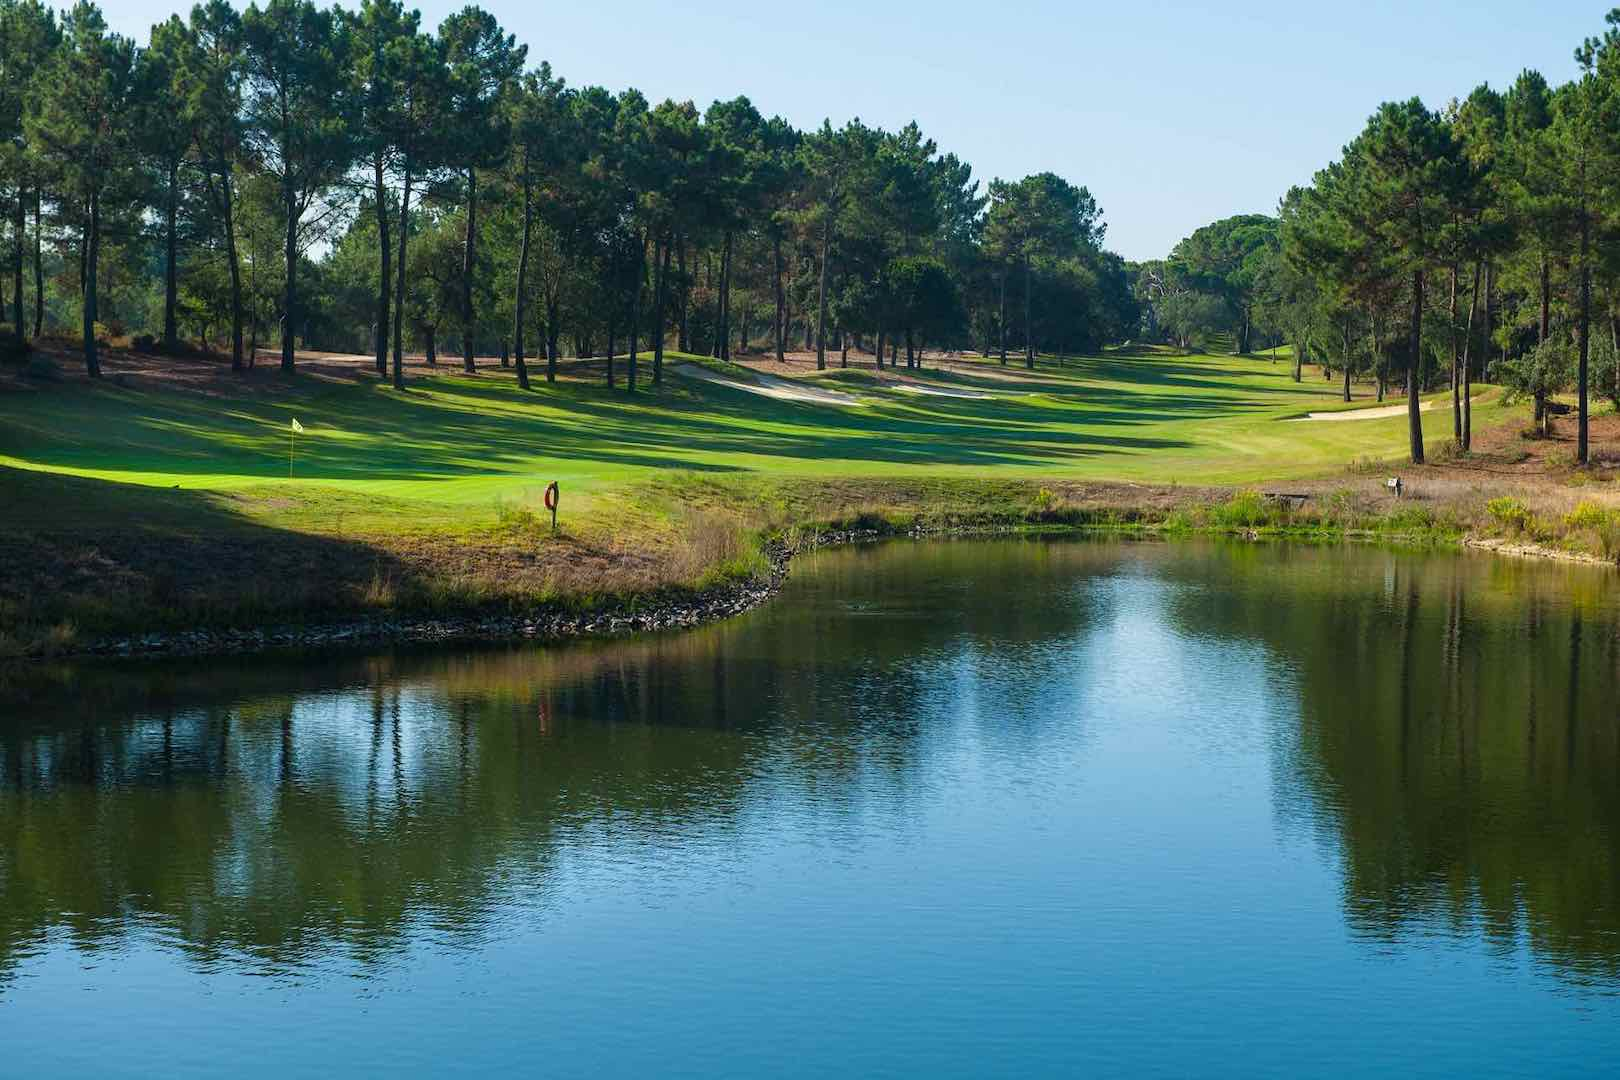 Lisbon Spring Breaks to put a smile on golfers's faces